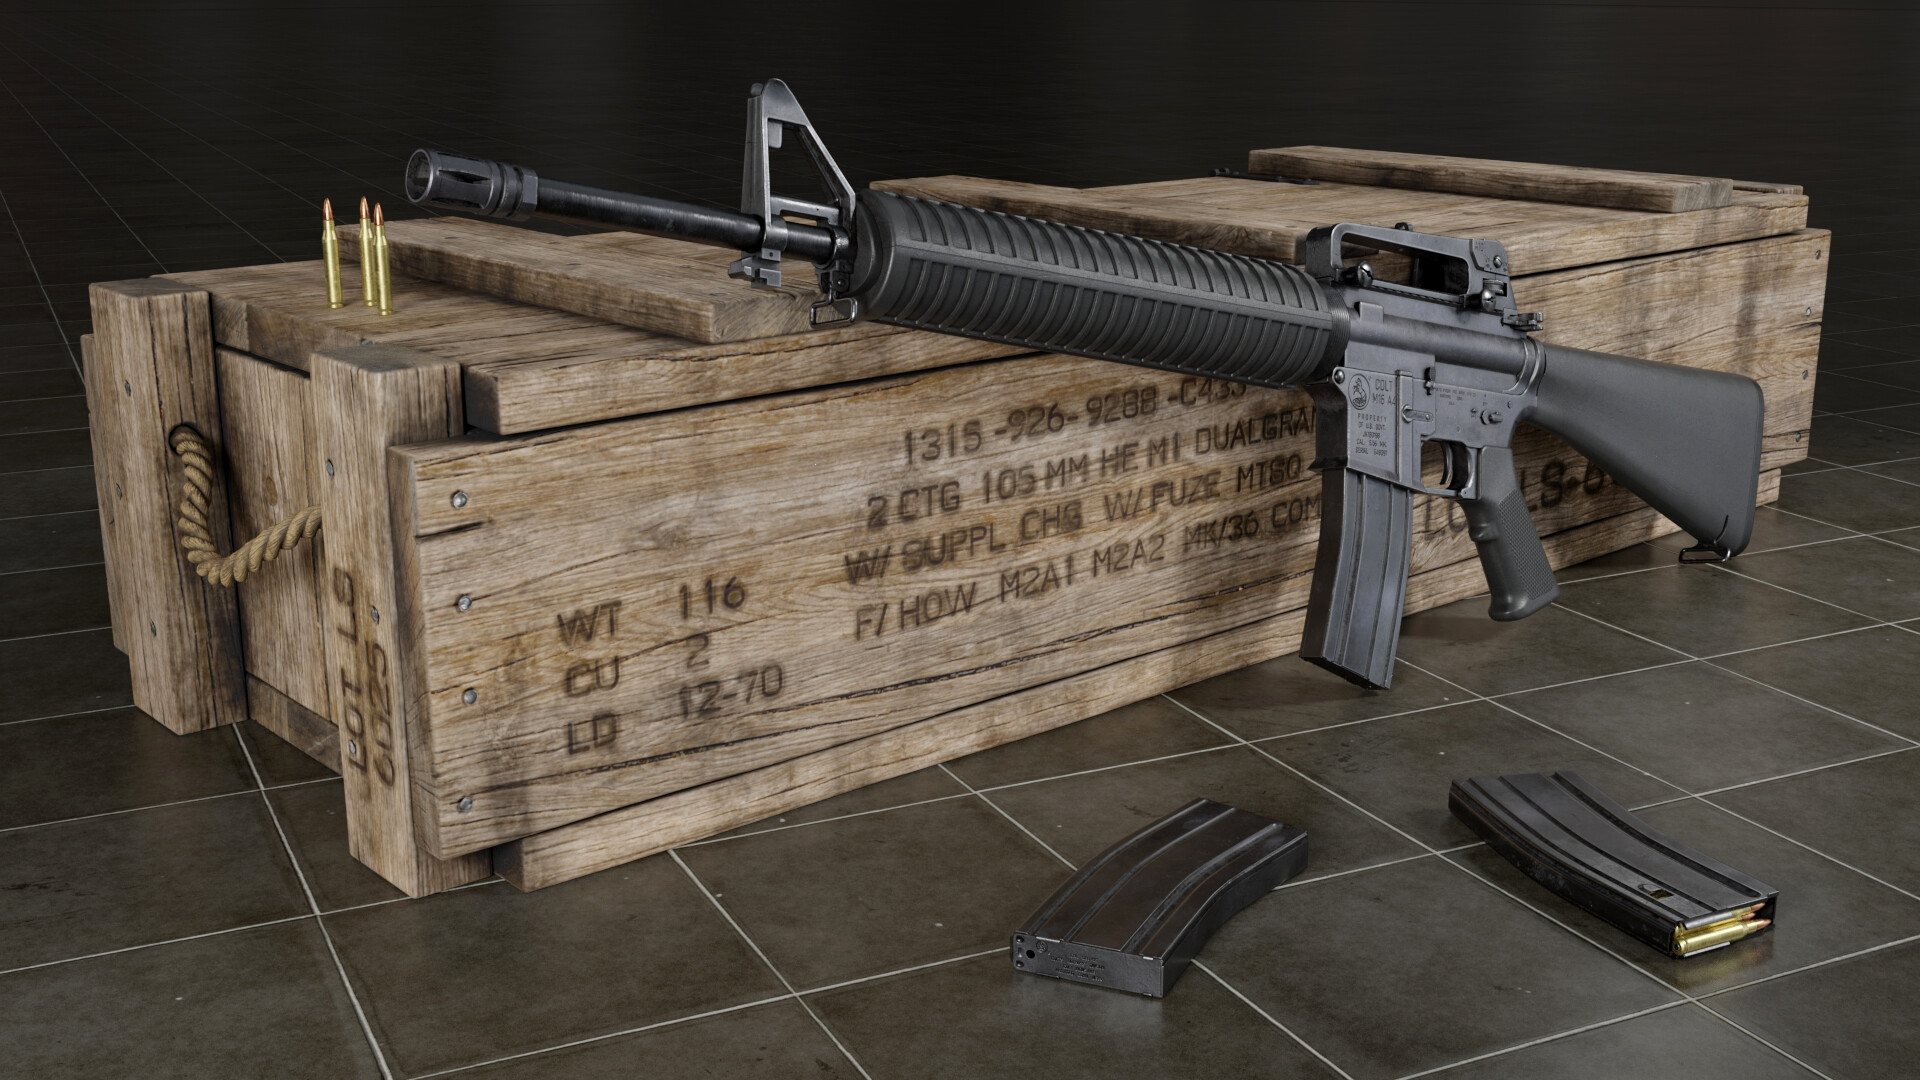 Tales of the Gun : M16 Rifle Weapon Best Military Assault Firearm